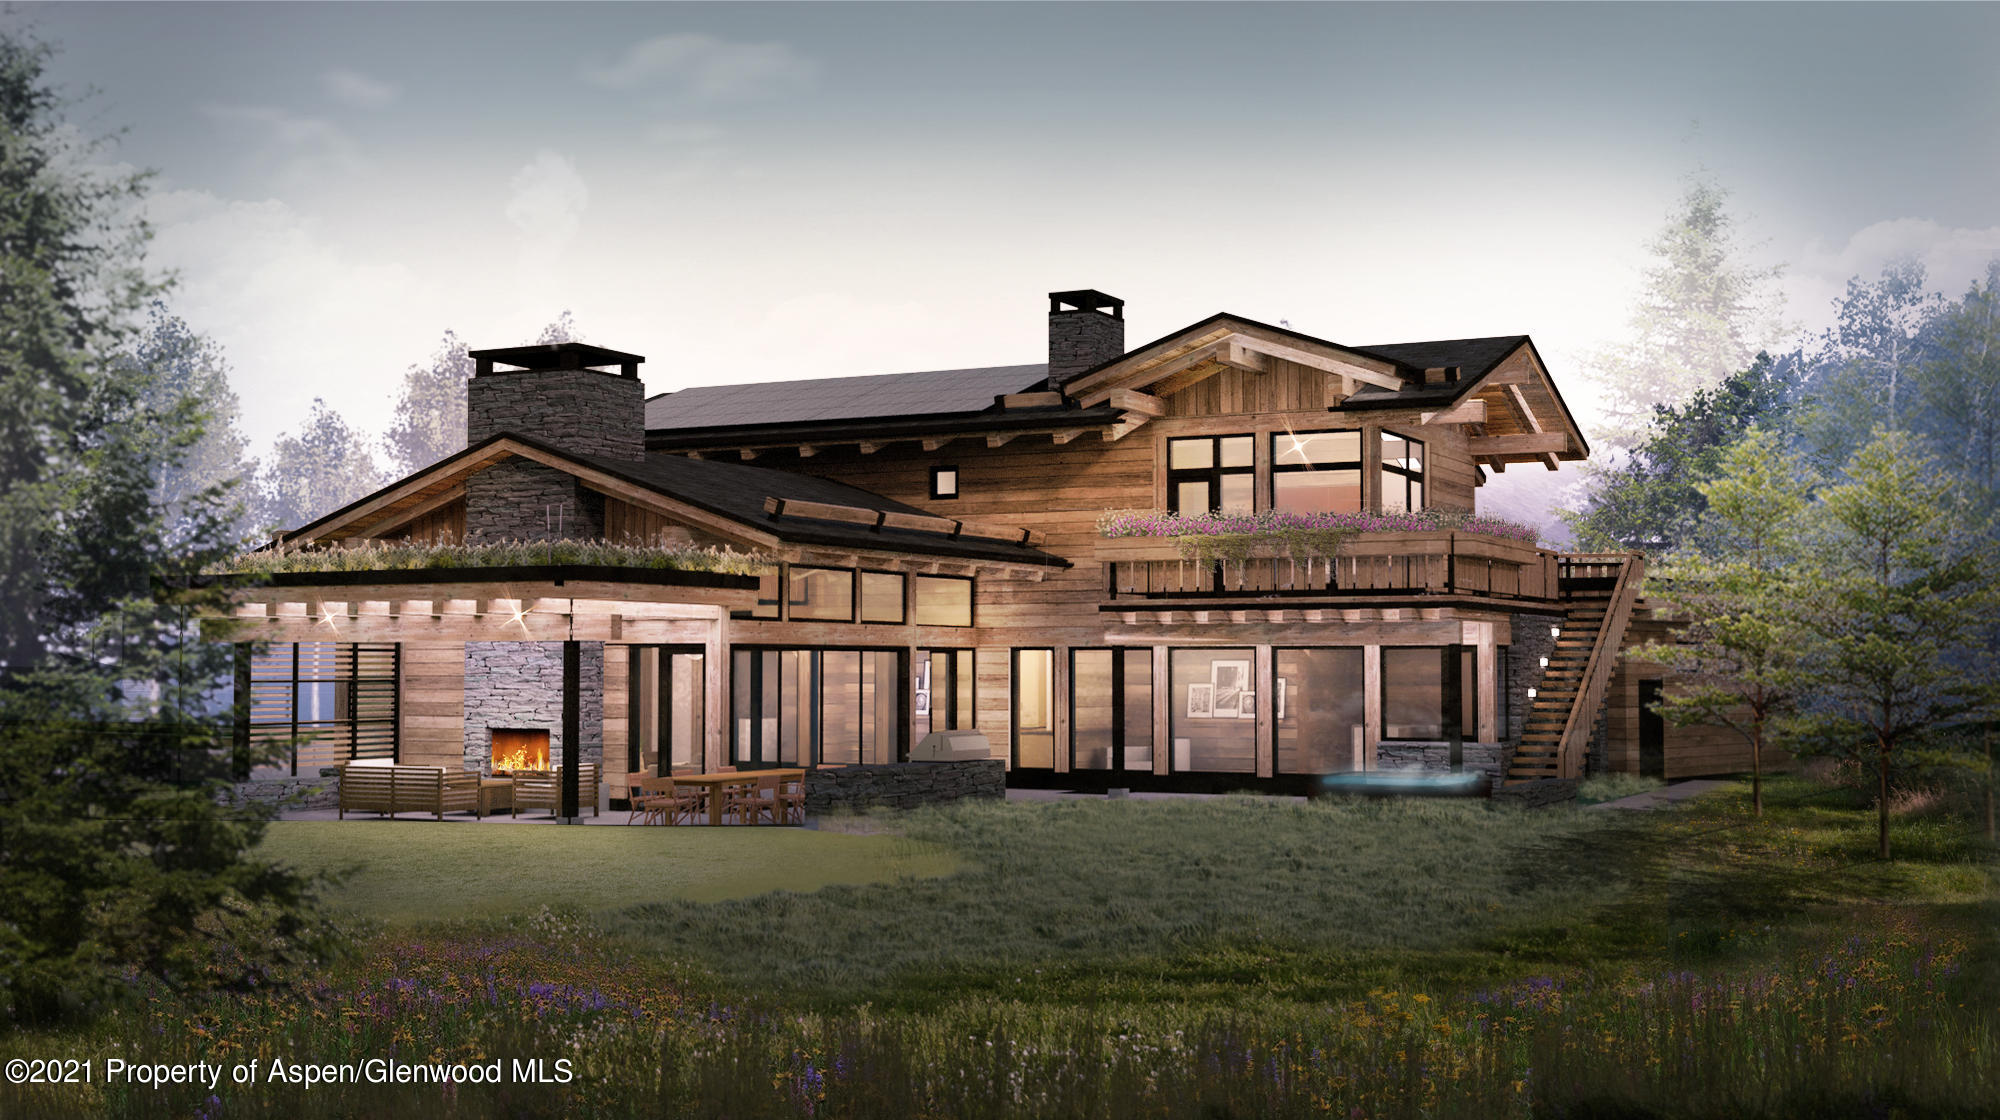 Stunning 5 bedroom 8 bath new construction created by Alpinist Ventures just moments from all four ski mountains, Maroon Creek and Aspen golf courses and steps to the Moore open space. With a distinct nod to European style and craftsmanship, 30 Maroon integrates old-growth timbers, reclaimed wood, locally fabricated architectural steel and a unique living roof. The home effortlessly rises from the landscape, creating an elemental, seamless fusion with the surrounding mountain vistas. Inside 30 Maroon Court, thoughtful layouts combine intimacy with dramatic open living spaces, making this home a dream for both entertaining and small family gatherings. Luxurious amenities include elegant, hotel-style ski and boot lockers and generous seasonal storage. Completion anticipated fall/winter 2022. The information contained herein, including, without limitation, any and all artist's or architectural conceptual renderings, plans, floor plans, specifications, features, facilities, dimensions, measurements depicted, or otherwise described herein, are based upon current development plans, which are subject to change or abandonment without notice, and may not be relied upon. No guarantees or representations whatsoever are made that any renderings, plans, floor plans, specifications, features, dimensions, measurements depicted, or otherwise described herein, will be provided, or, if provided, will be of the same type, size, quality, location or nature as depicted or otherwise described herein.   The office on the main level could be converted into a 6th bedroom.